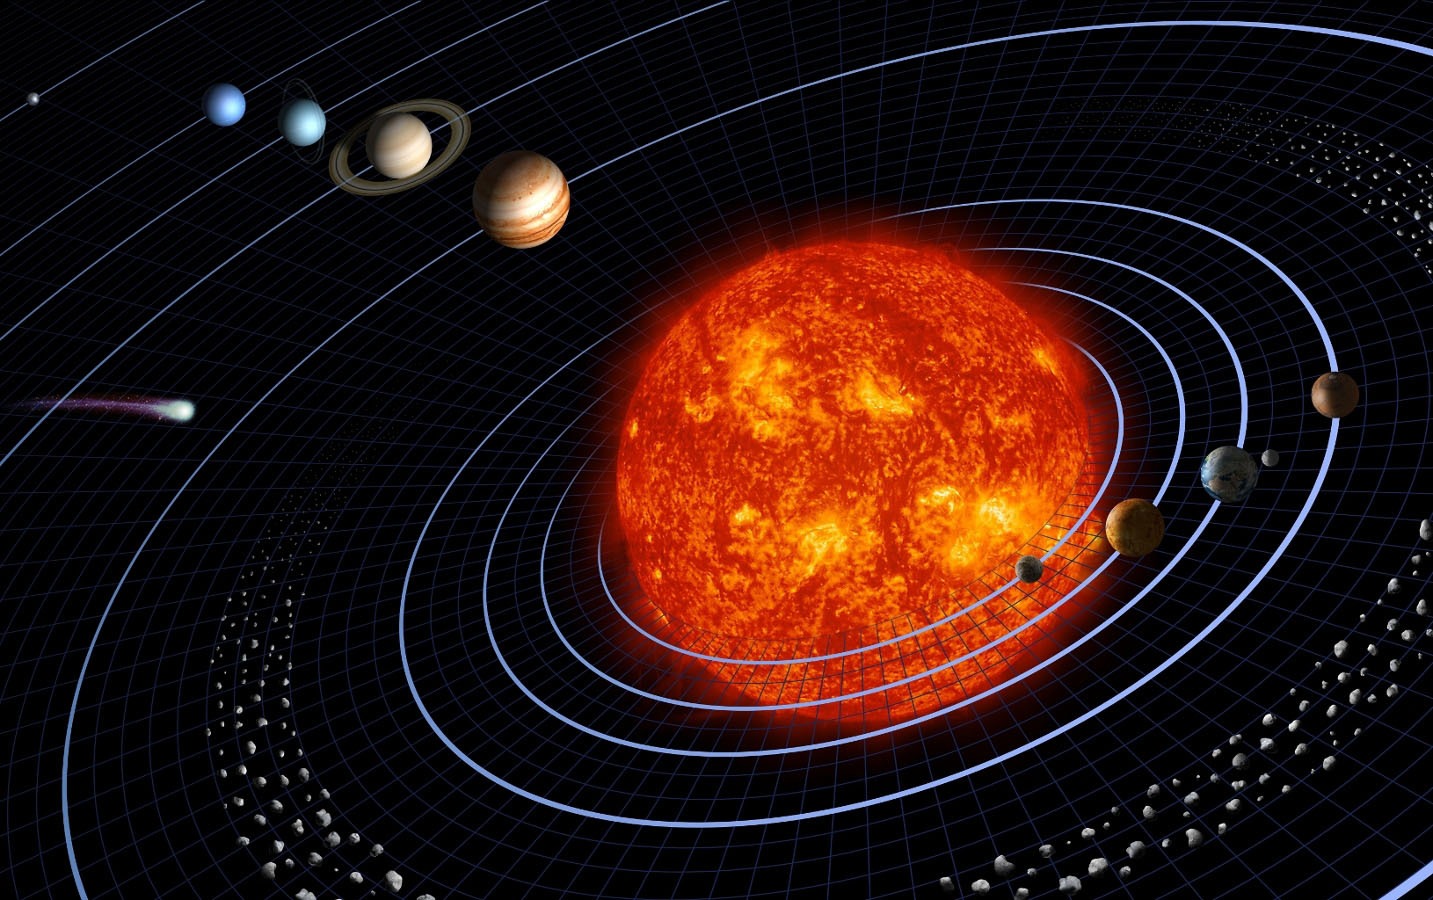 Space Images | Our Solar System Features Eight Planets